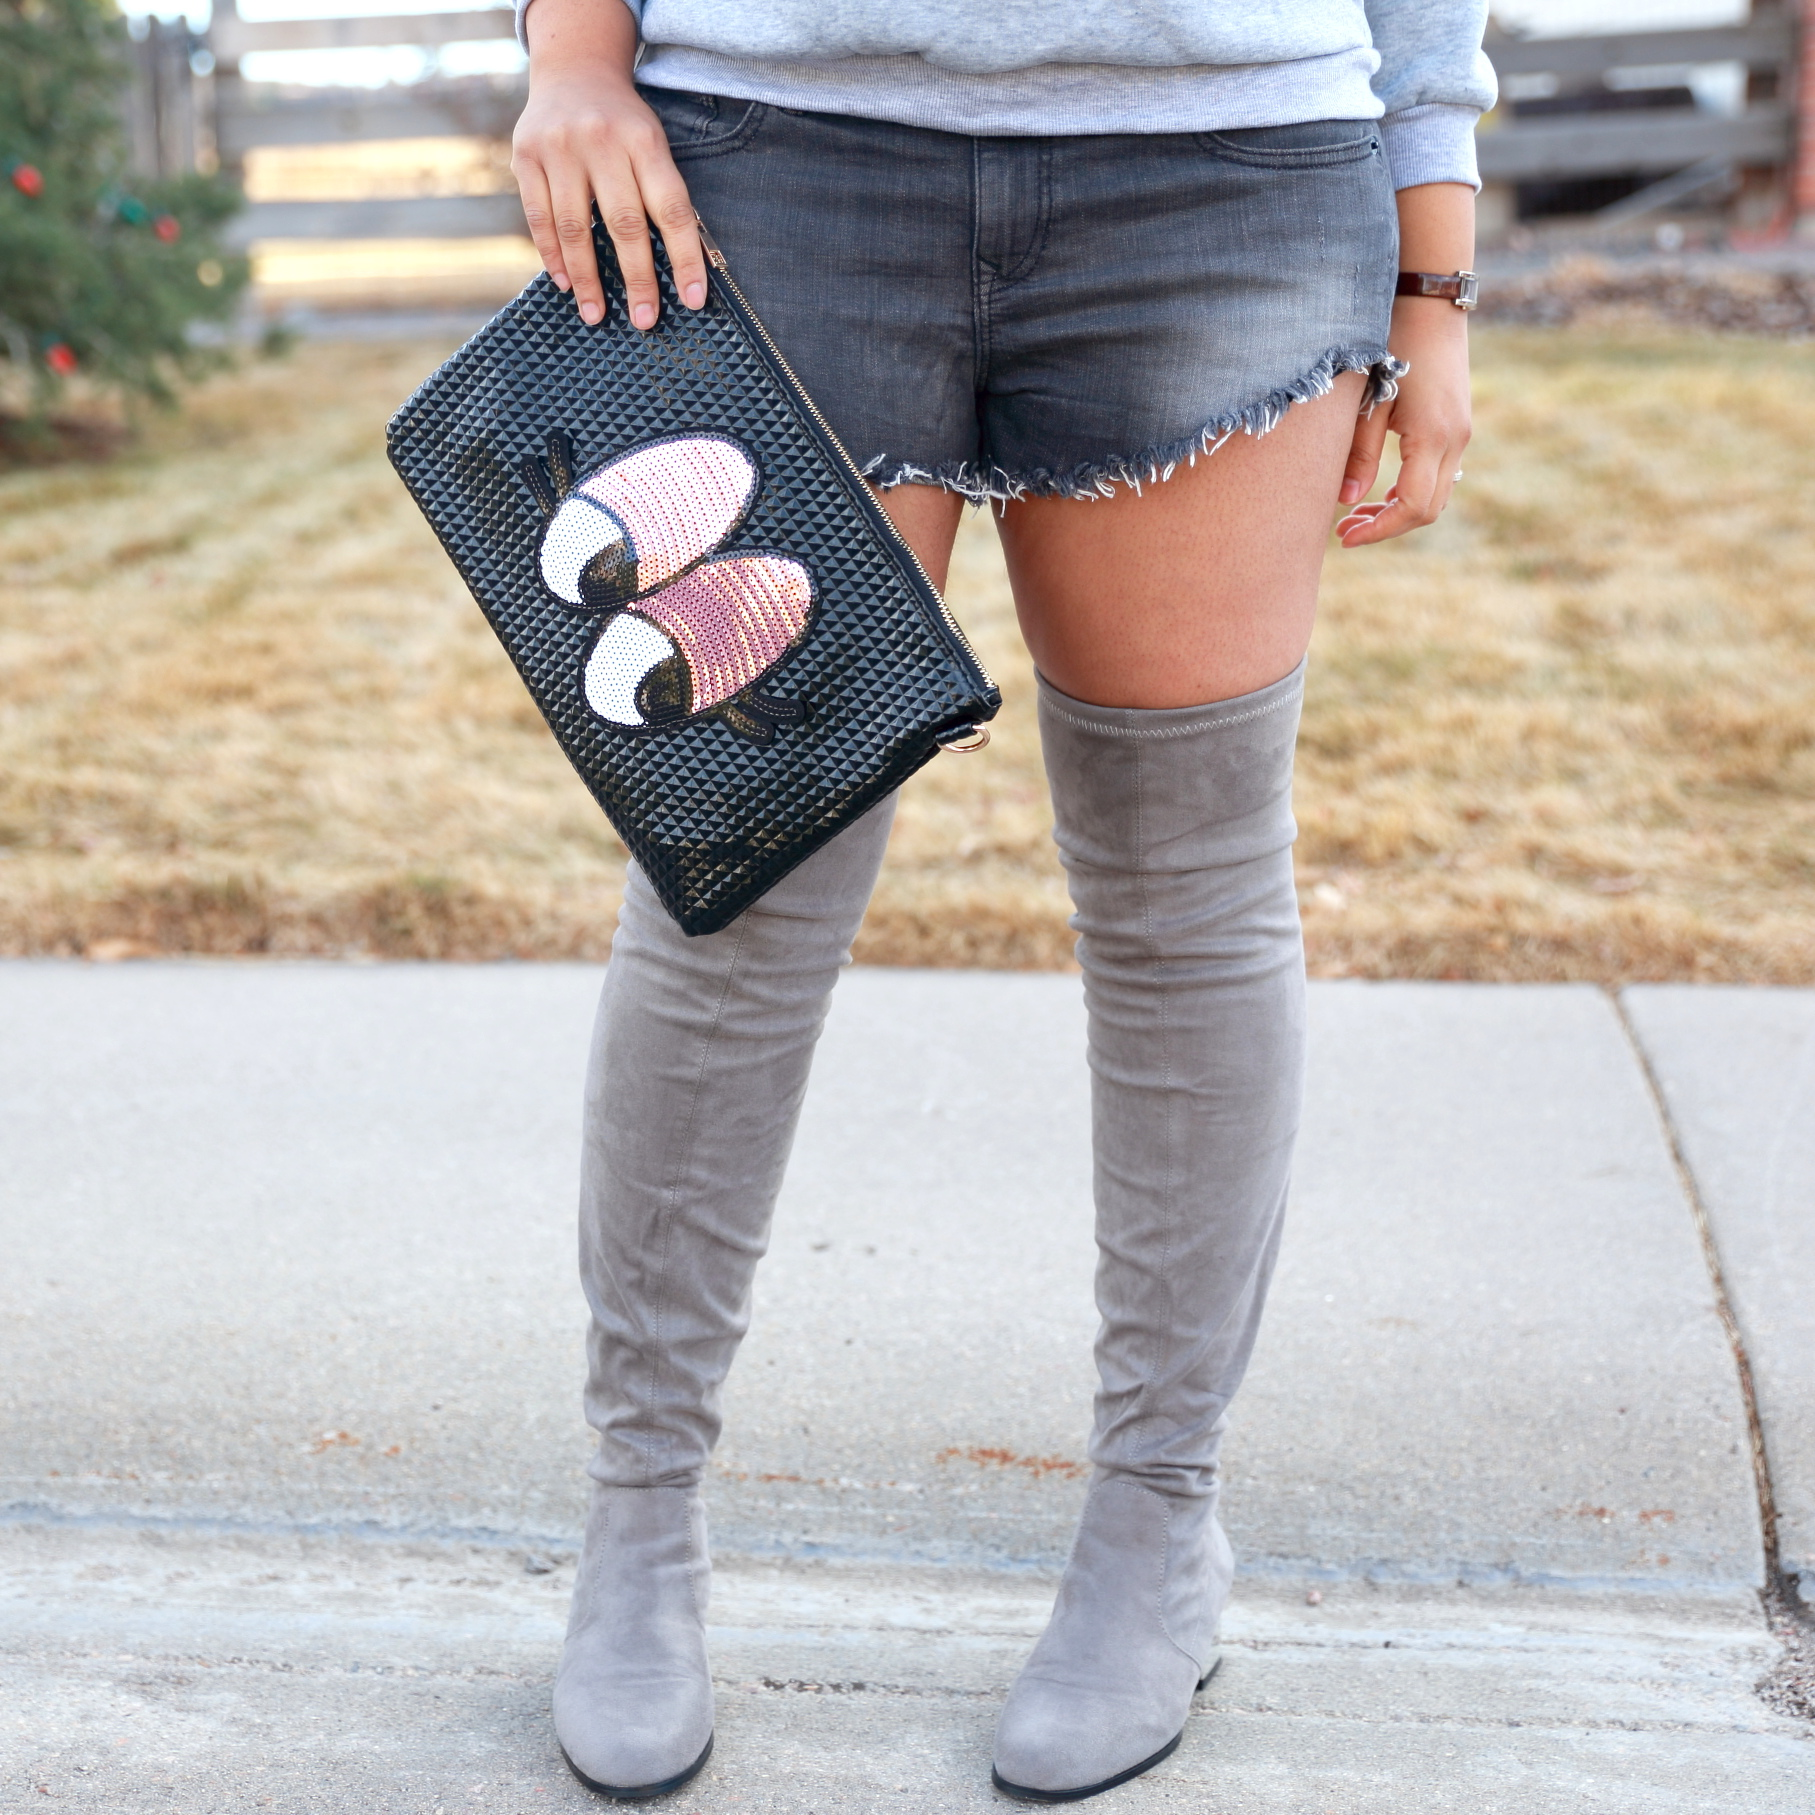 How to wear shorts in cold weather! Select a thicker fabric shorts like tweed, denim or leather and pair it with a cozy sweatshirt or sweater. Wear thigh high or over the knee boots to keep you warm. For extra layering add a scarf or jacket. This makes for a perfect street style.